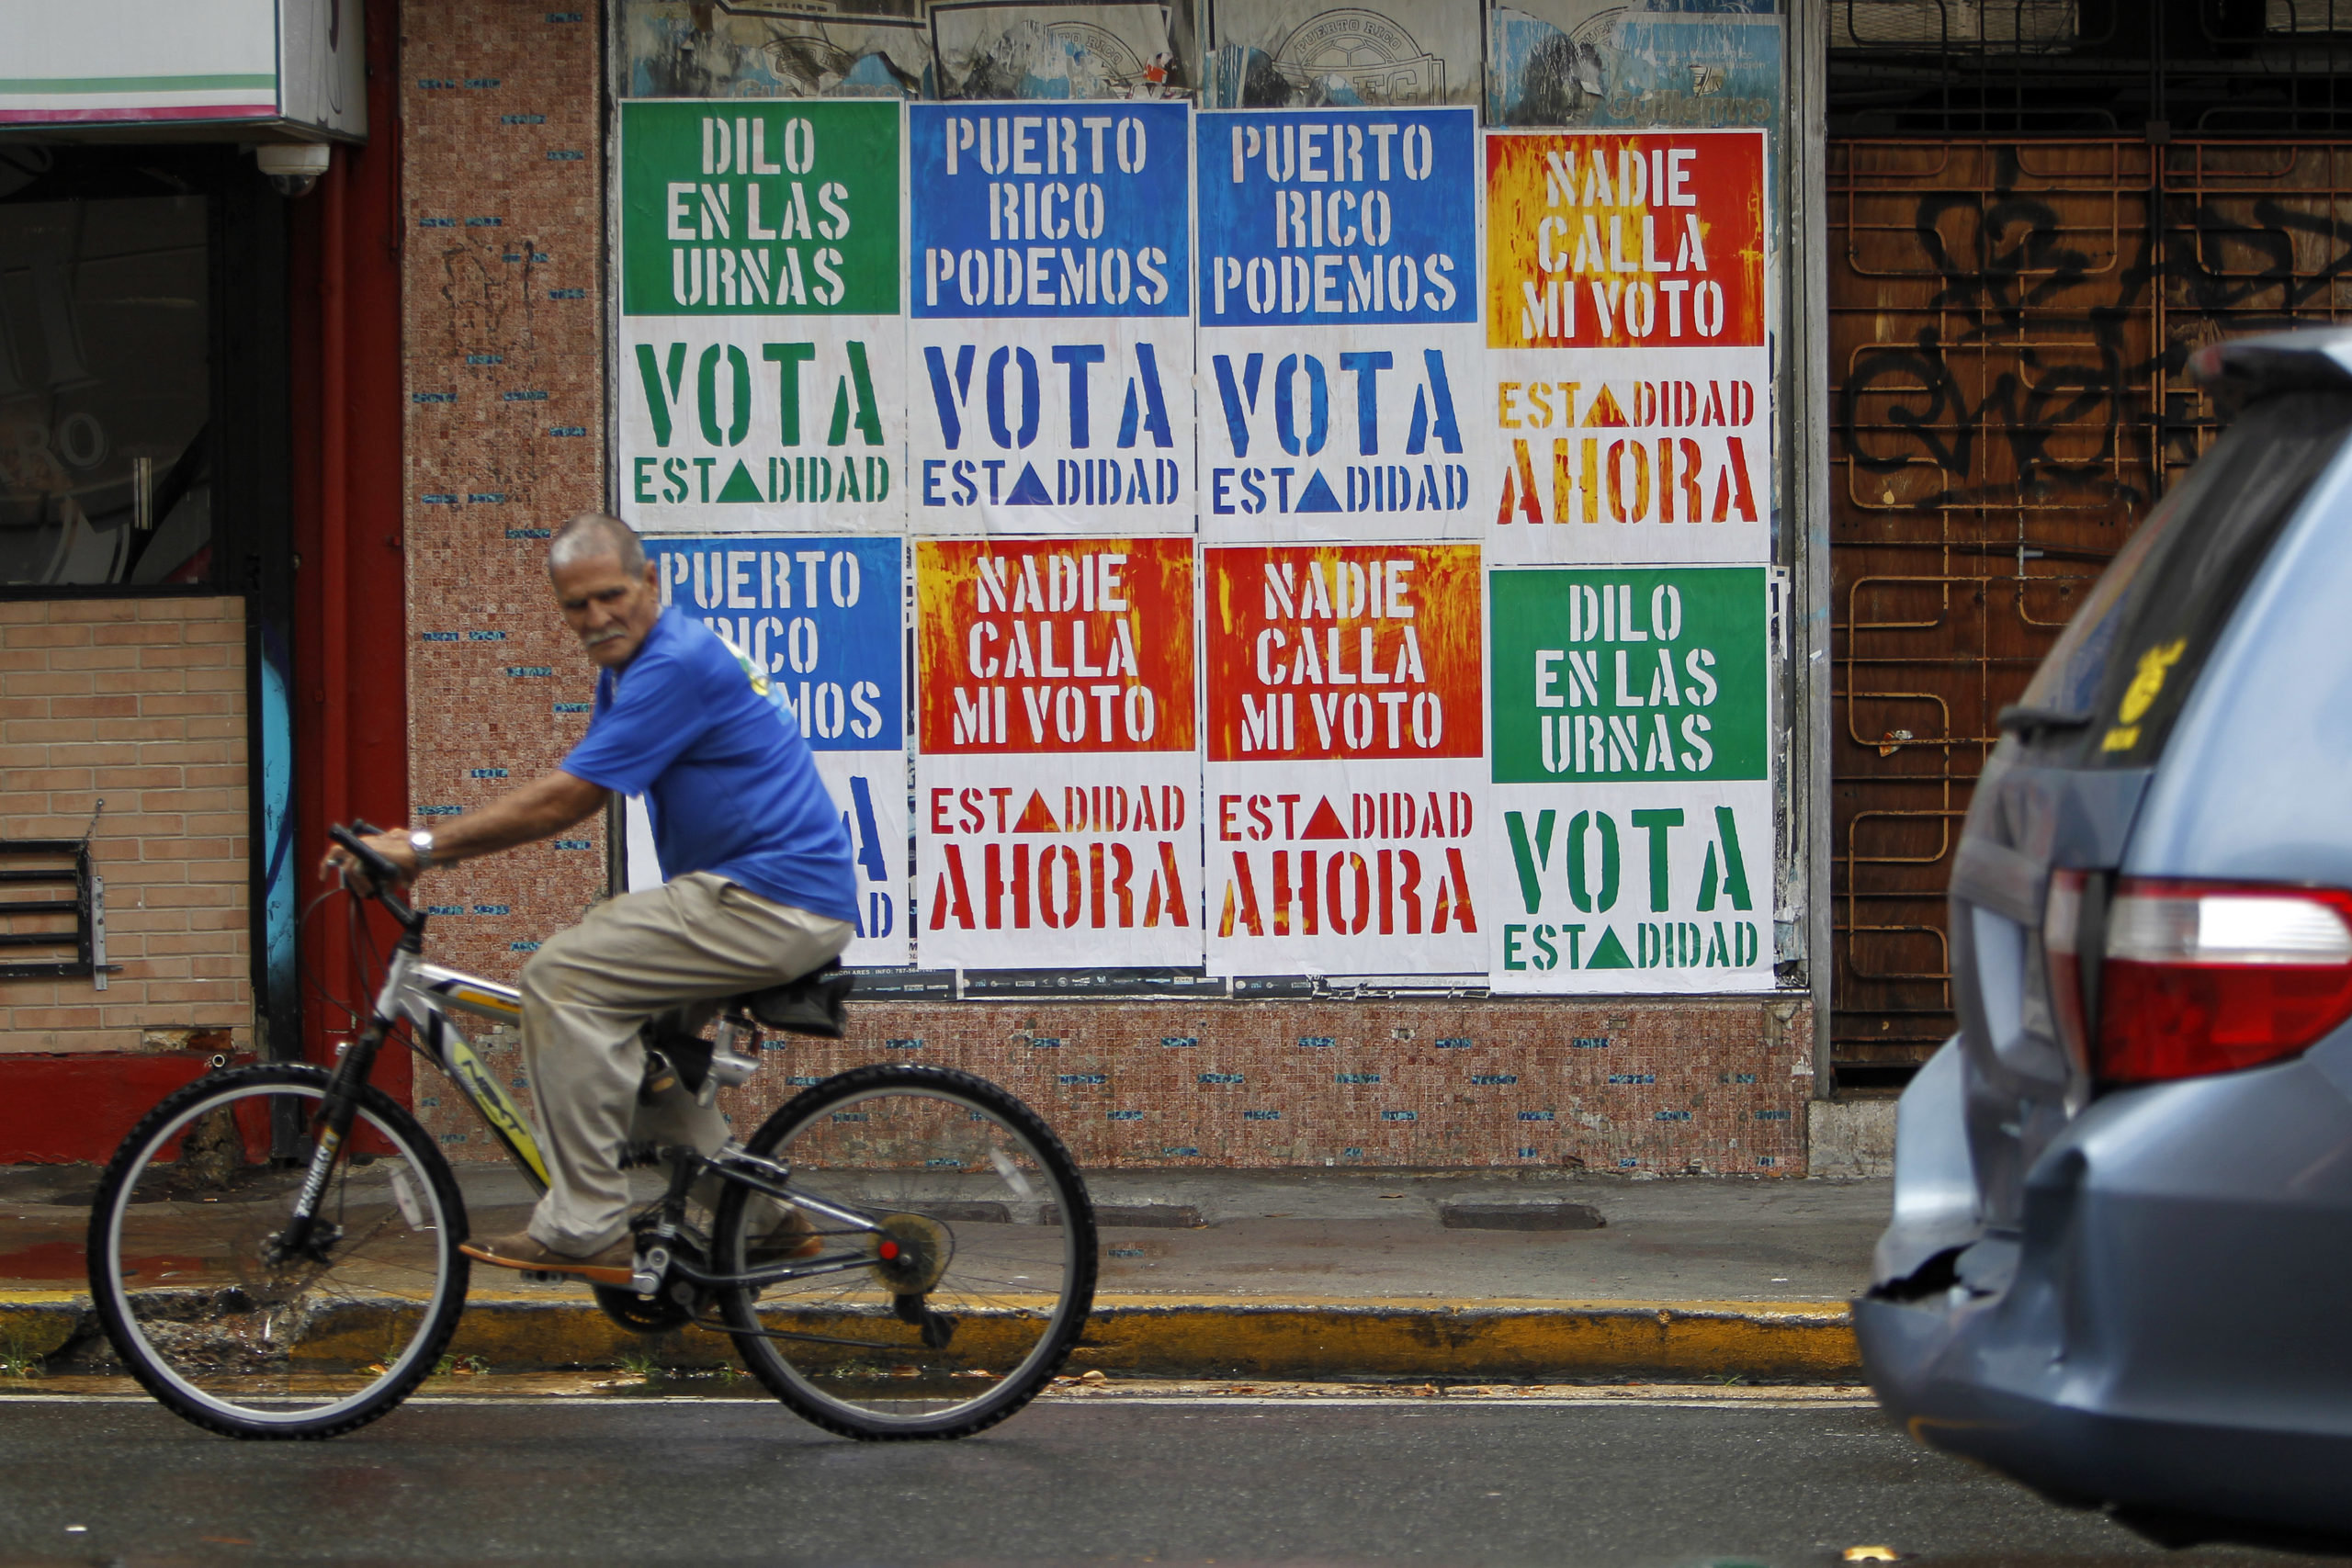 A rides his bicycle in front of a wall covered with campaign posters promoting Puerto Ricos statehood in San Juan, on June 9, 2017. A referendum on the political status of the US territory takes place on June 11, 2017. The US commonwealth of Puerto Rico votes on whether to become the 51st state. / AFP PHOTO / Ricardo ARDUENGO (Photo credit should read RICARDO ARDUENGO/AFP via Getty Images)